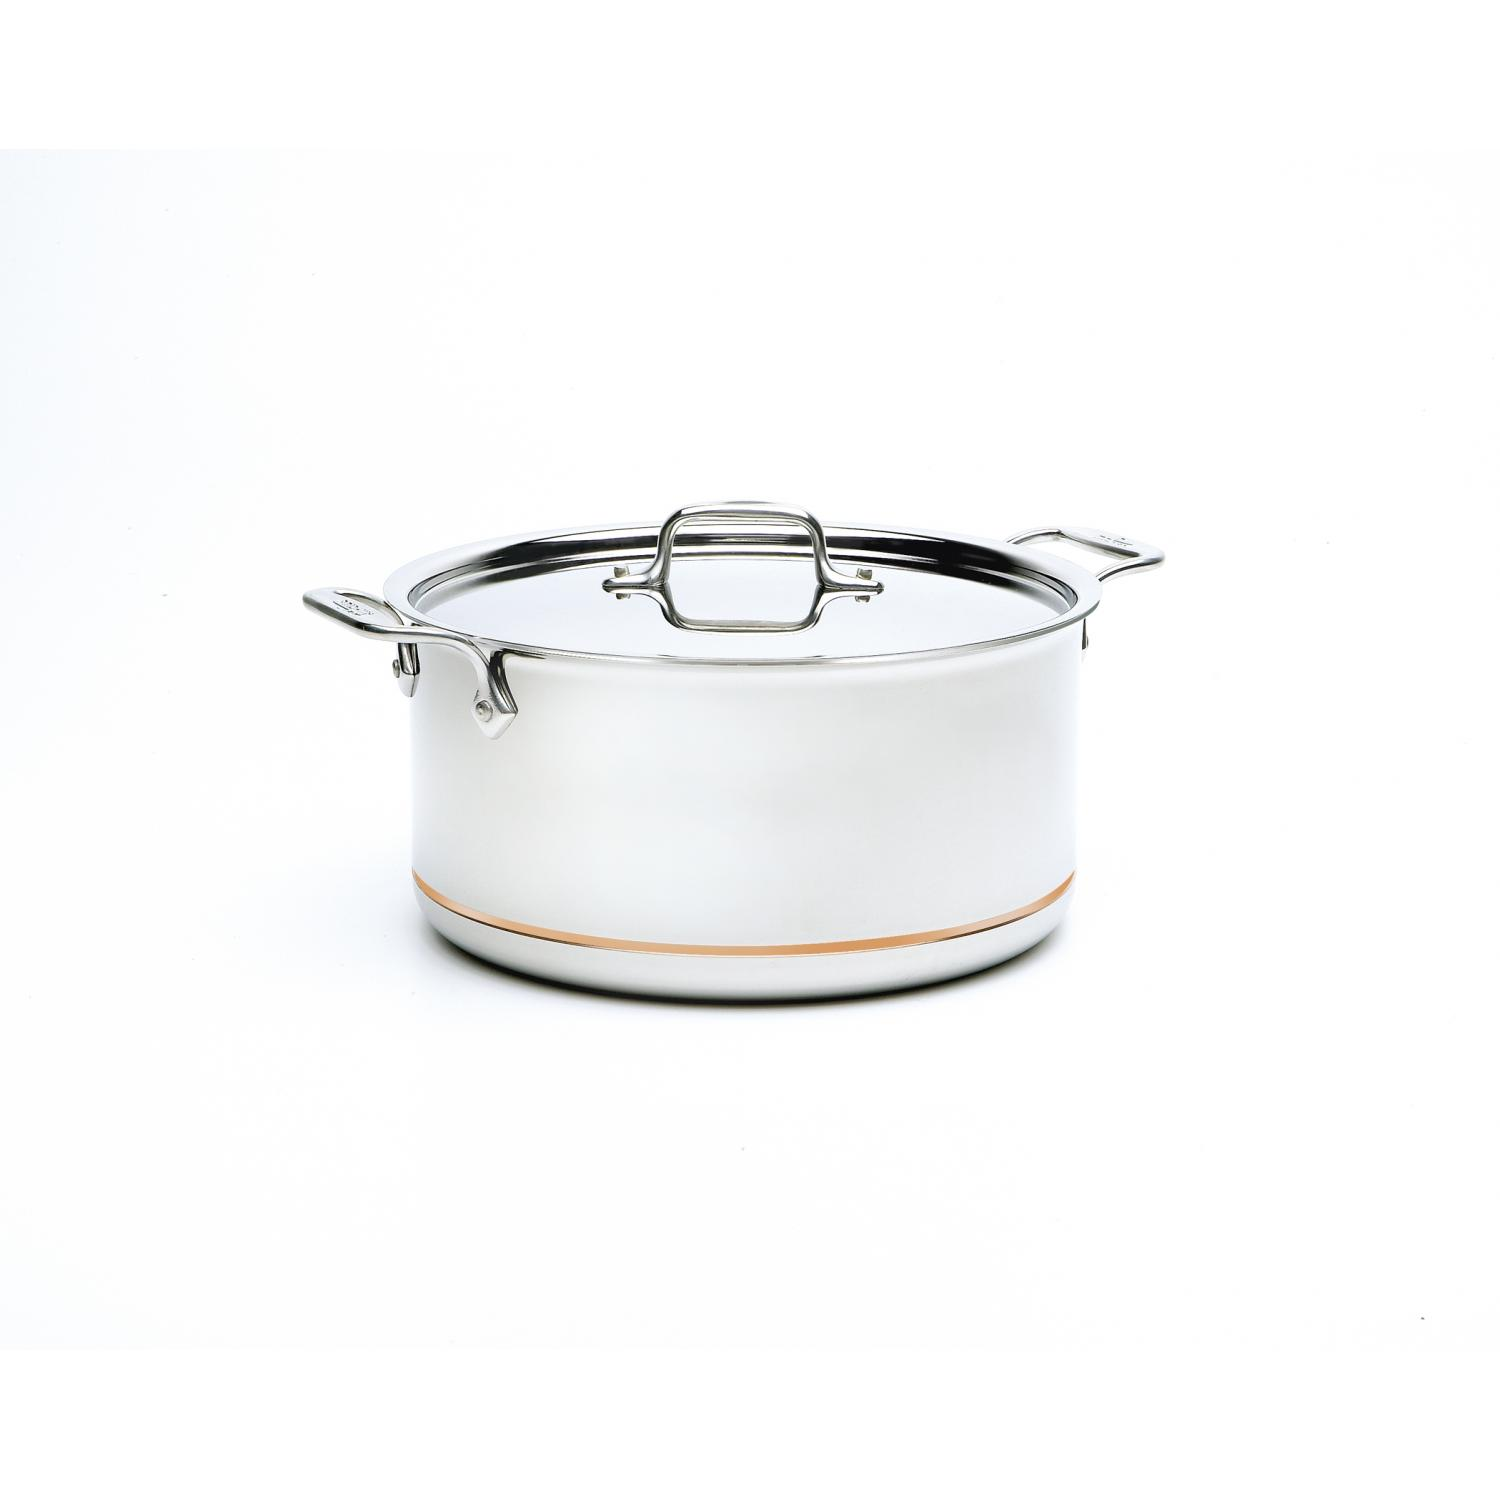 All-Clad Copper-Core 8-Quart Stockpot With Lid